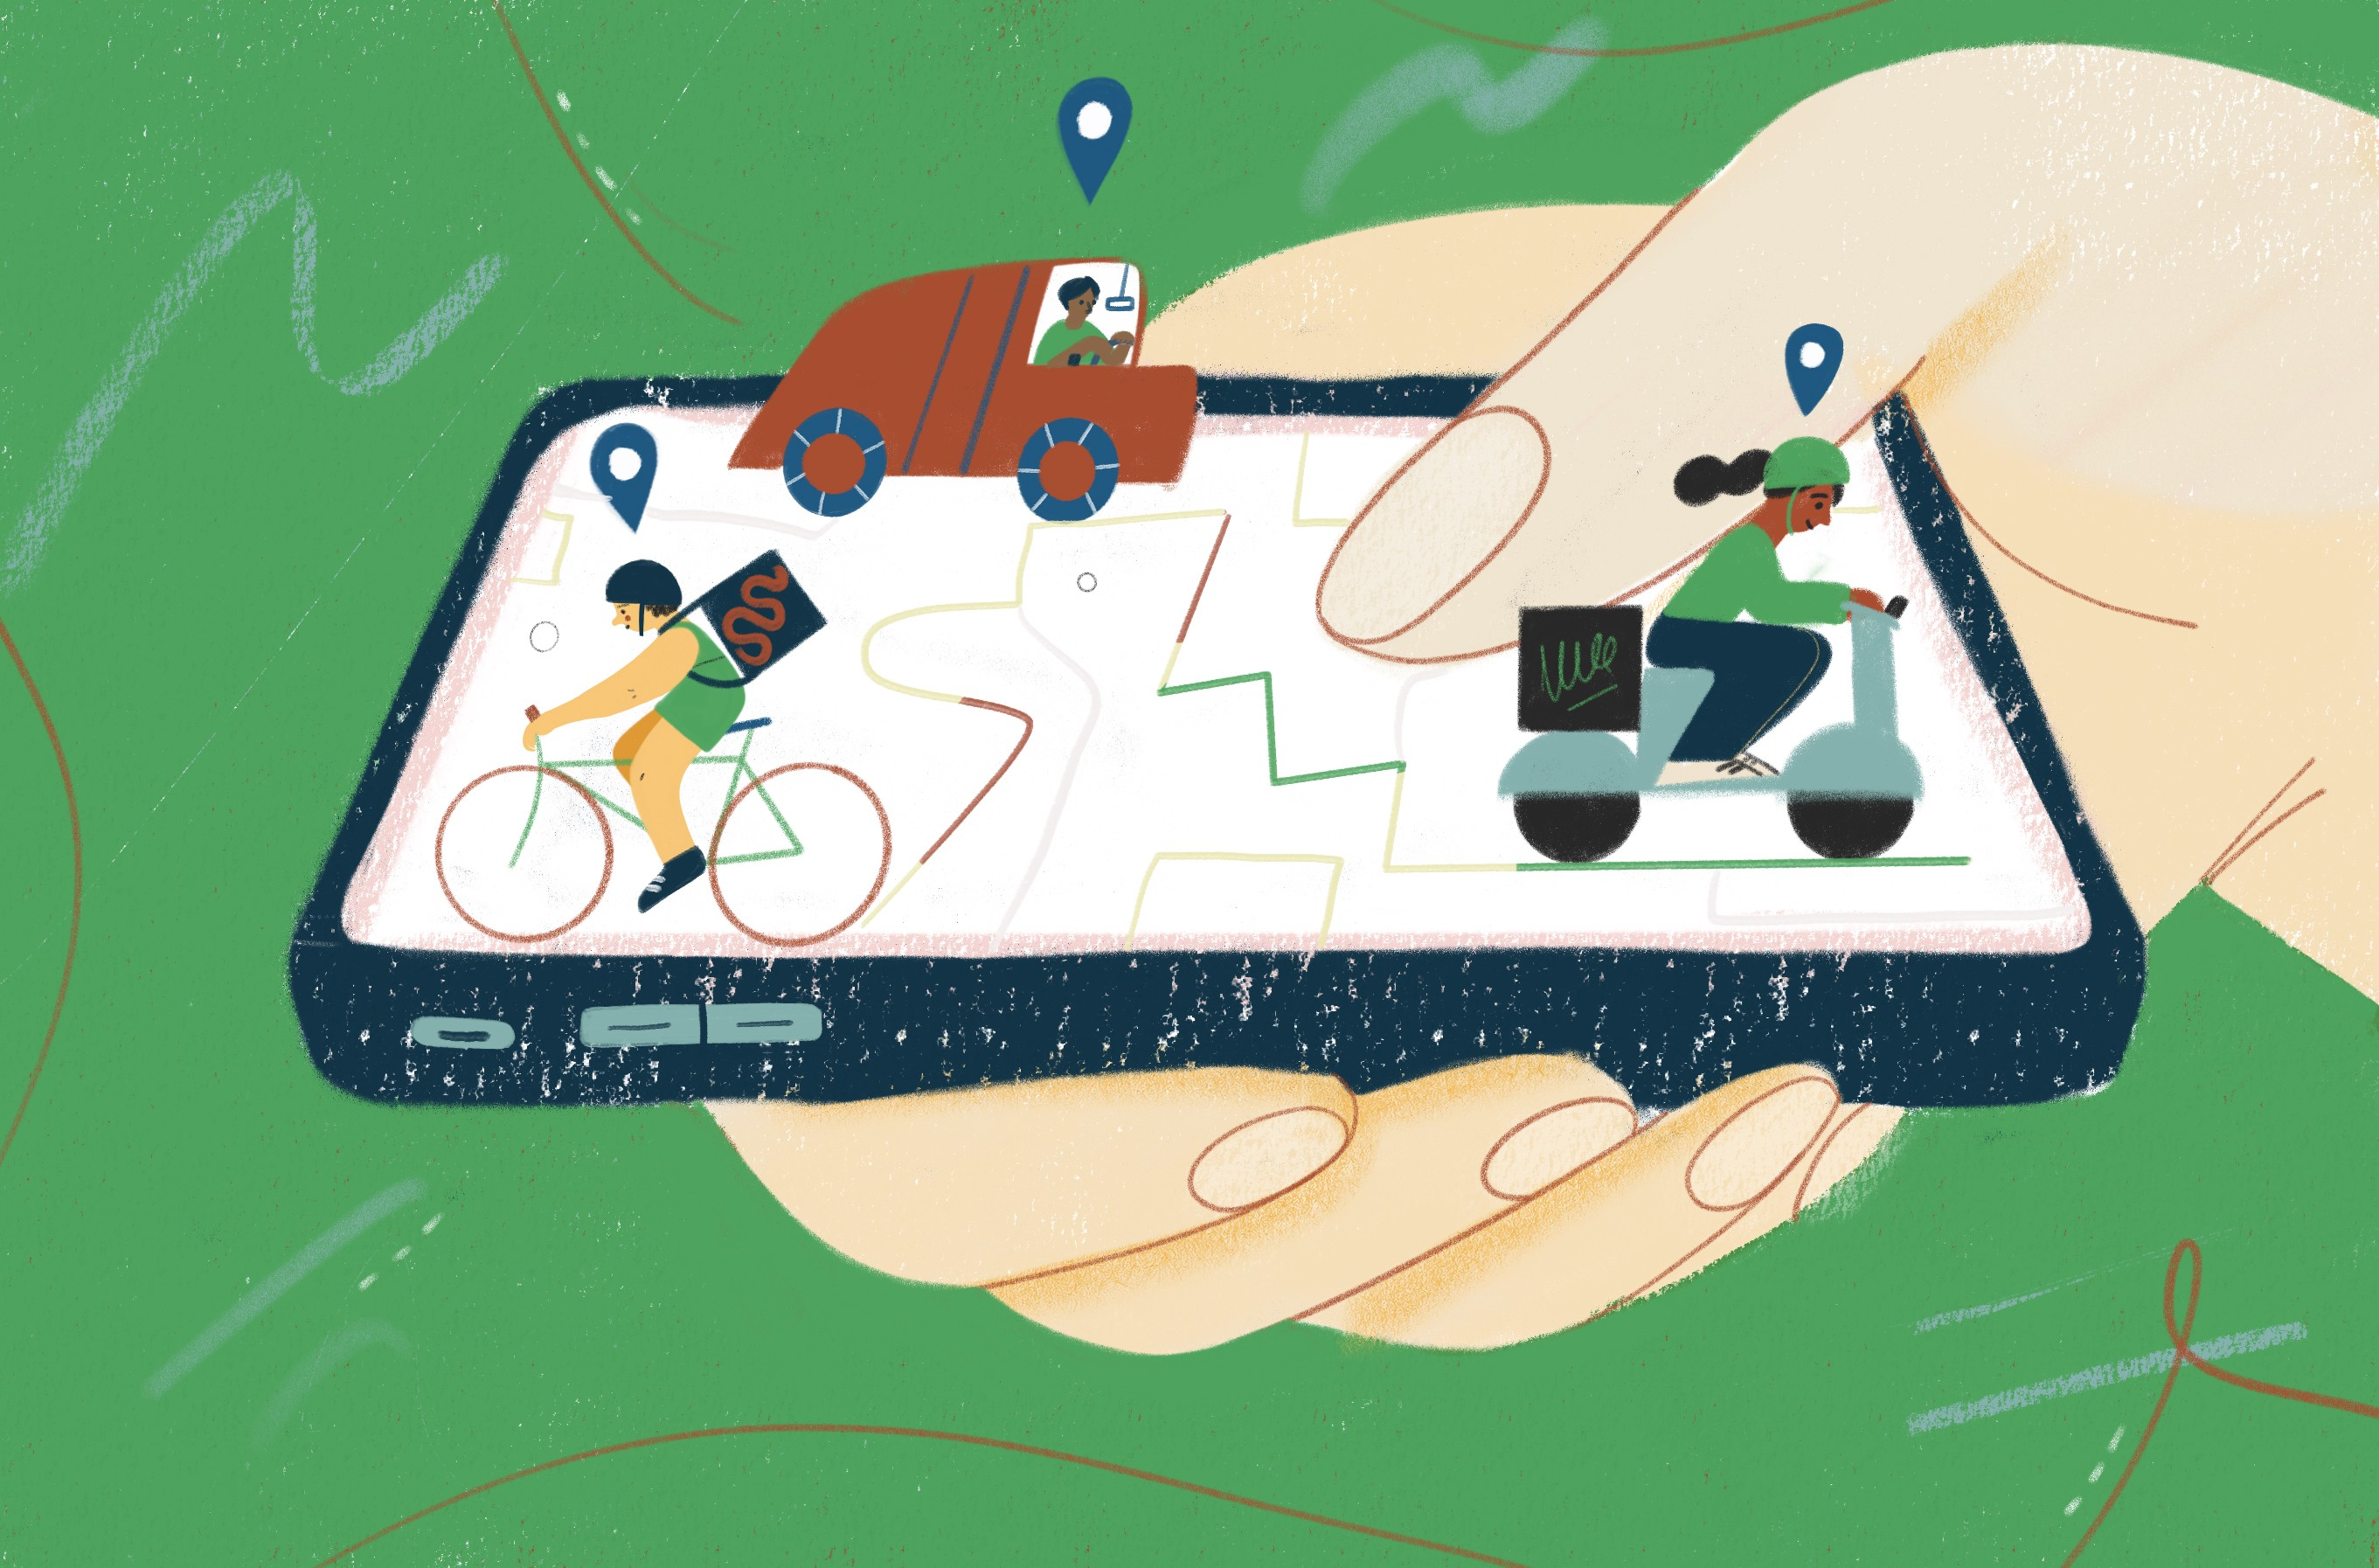 Illustration of a smartphone in a hand, with various people driving vehicles around the digital routes